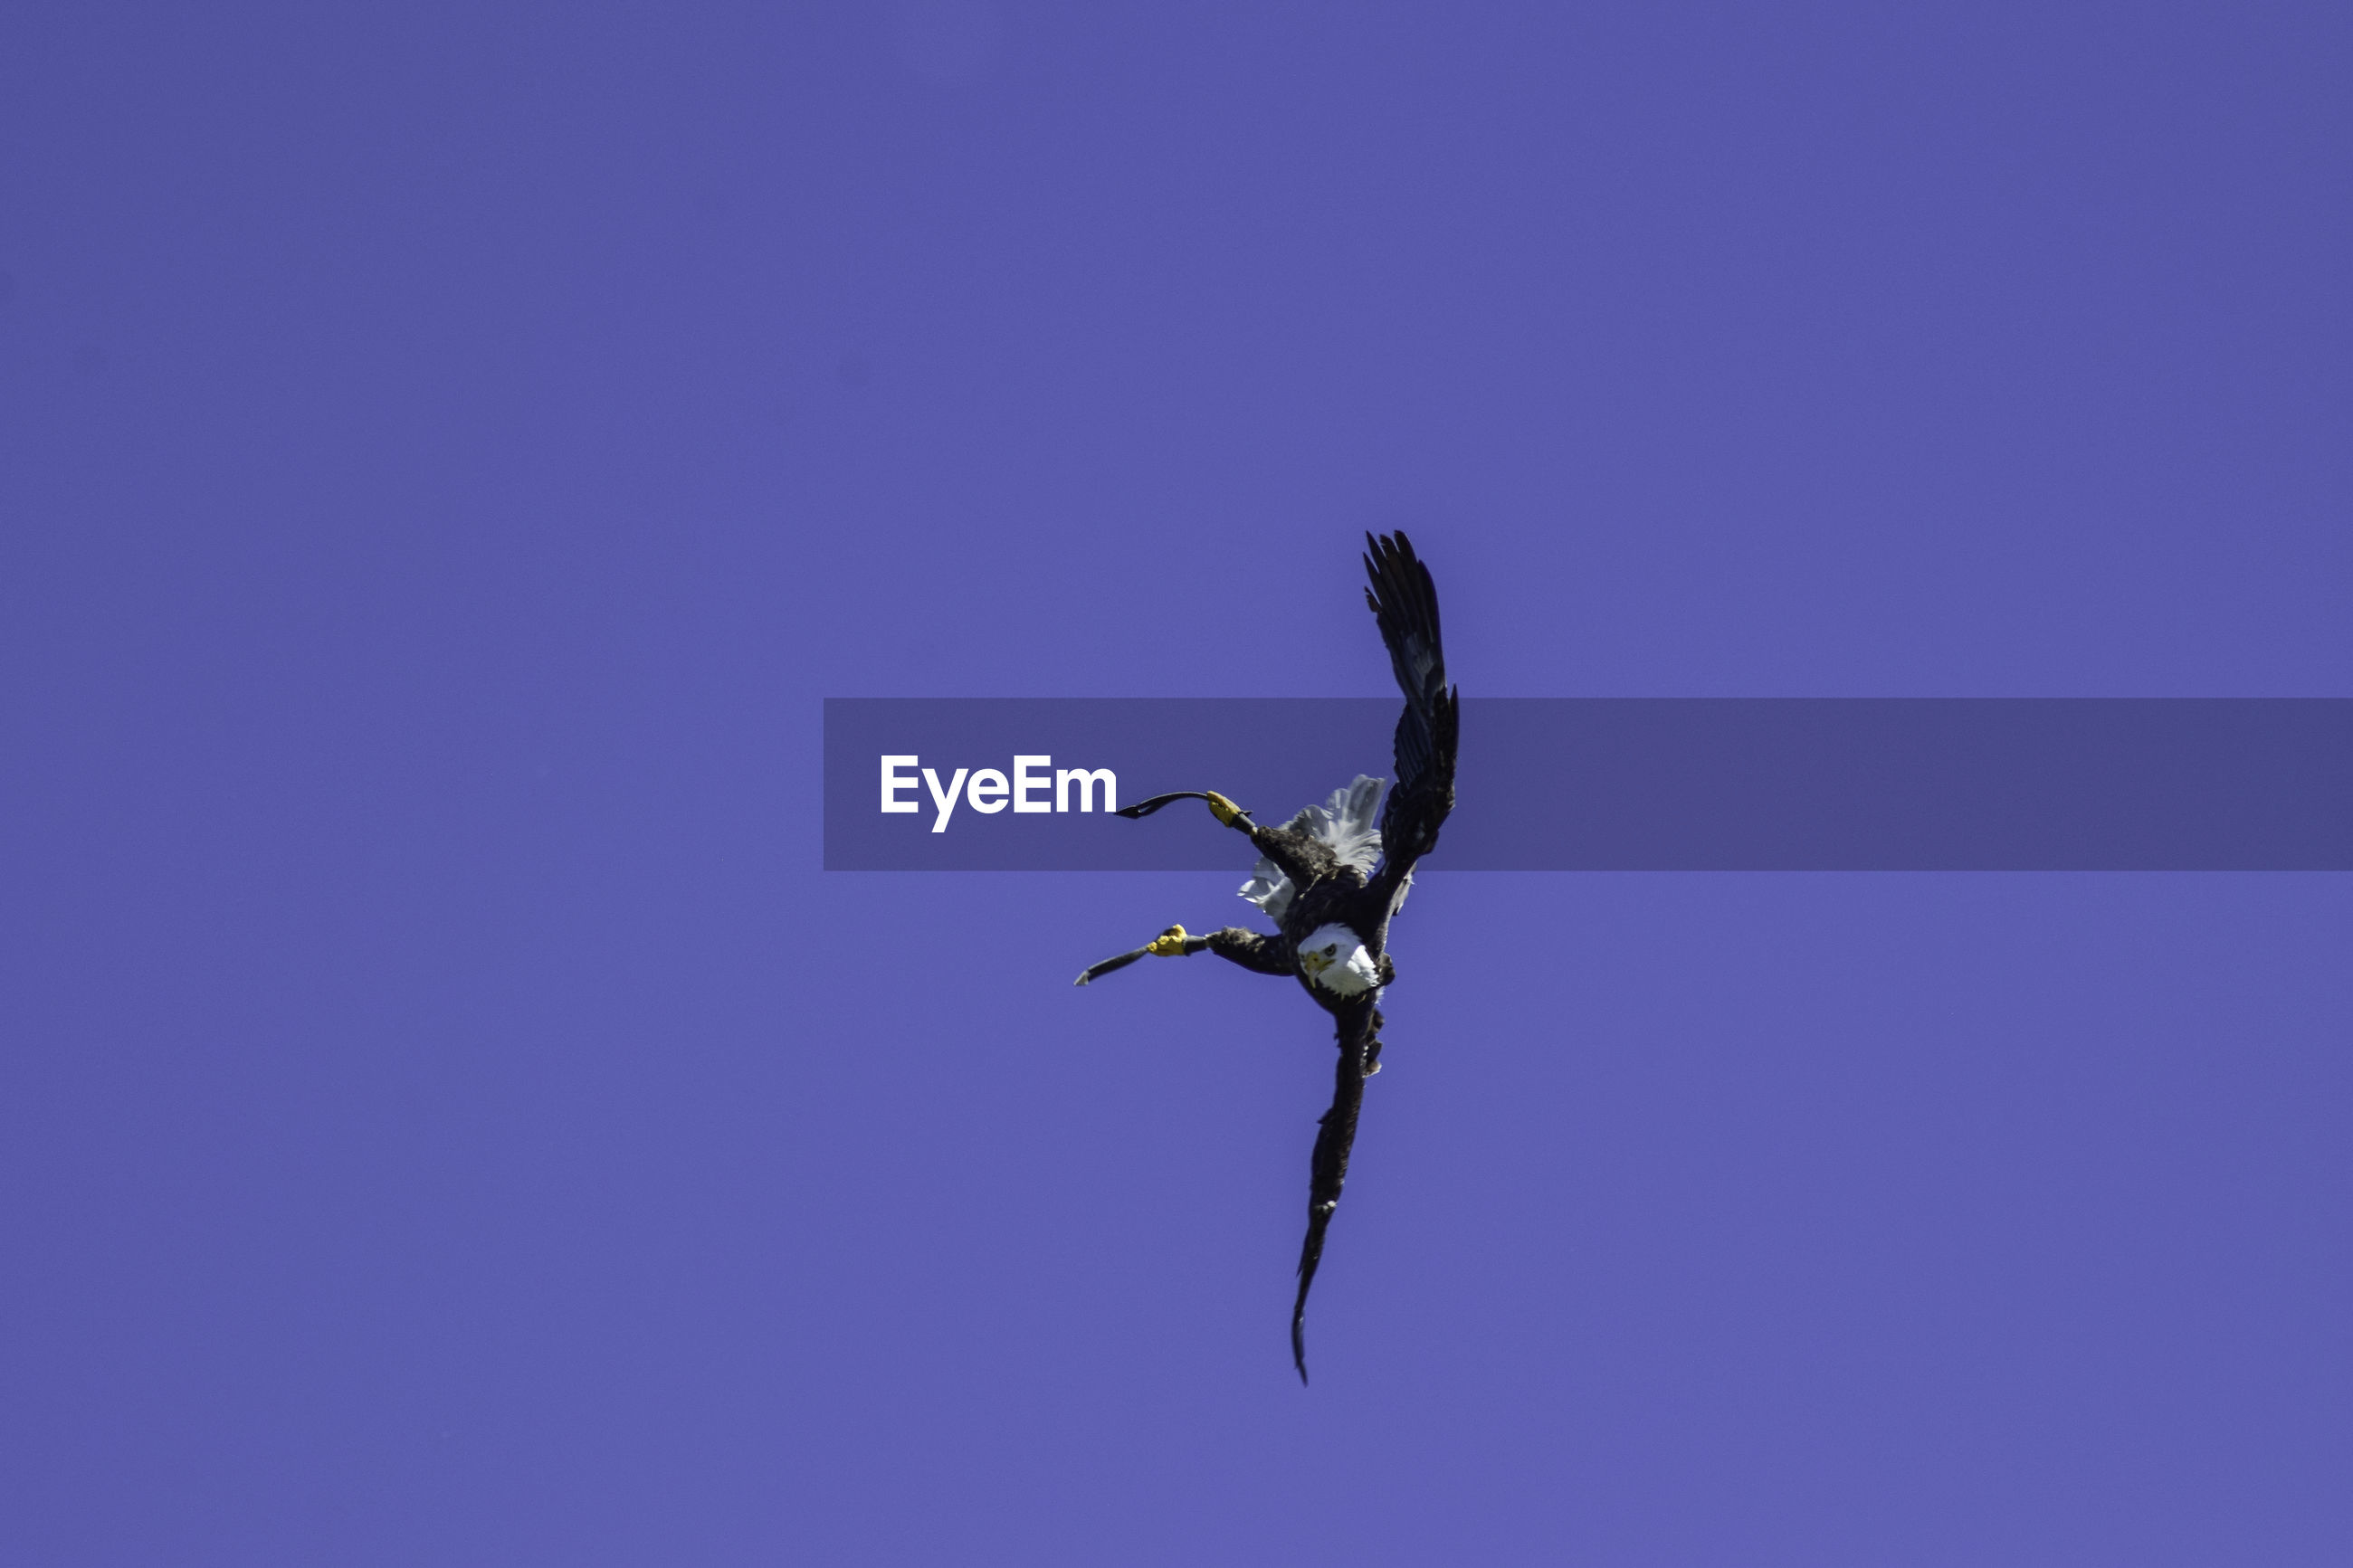 VIEW OF A BIRD FLYING